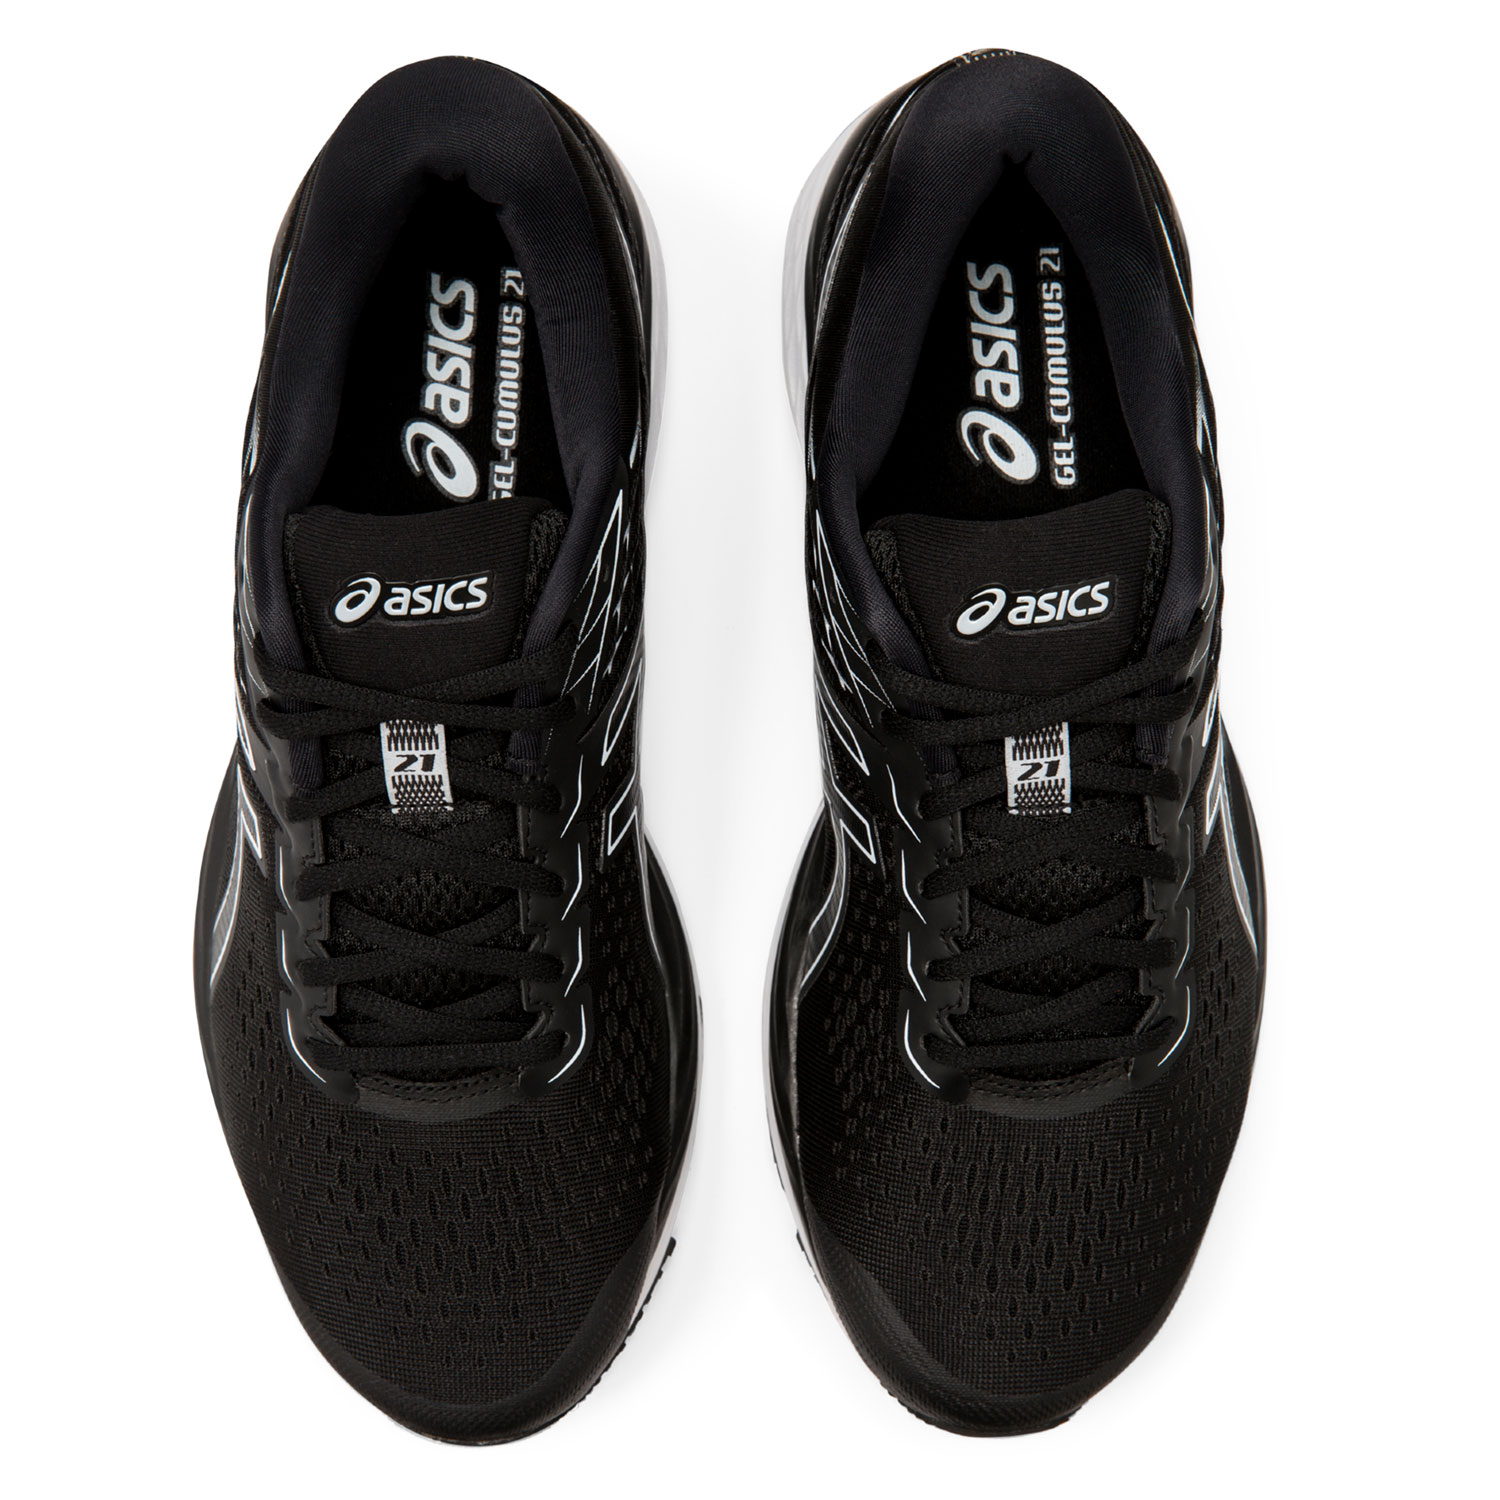 Asics Gel Cumulus 21 - Black/White